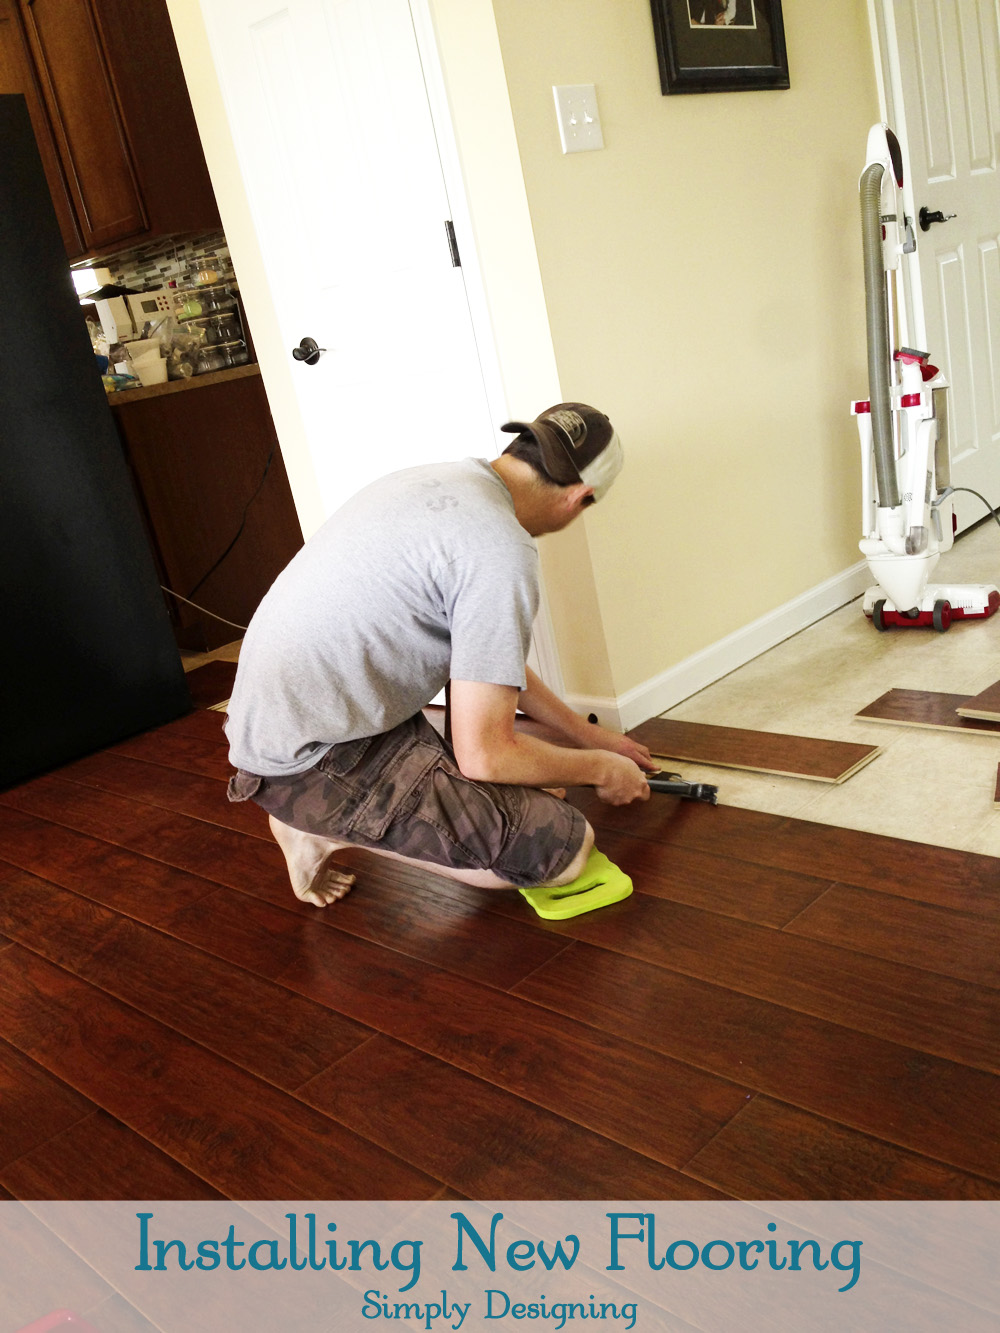 How to install floating laminate wood flooring part 2 the installing laminate flooring diy flooring homeimprovement laminateflooring at simply designing dailygadgetfo Images